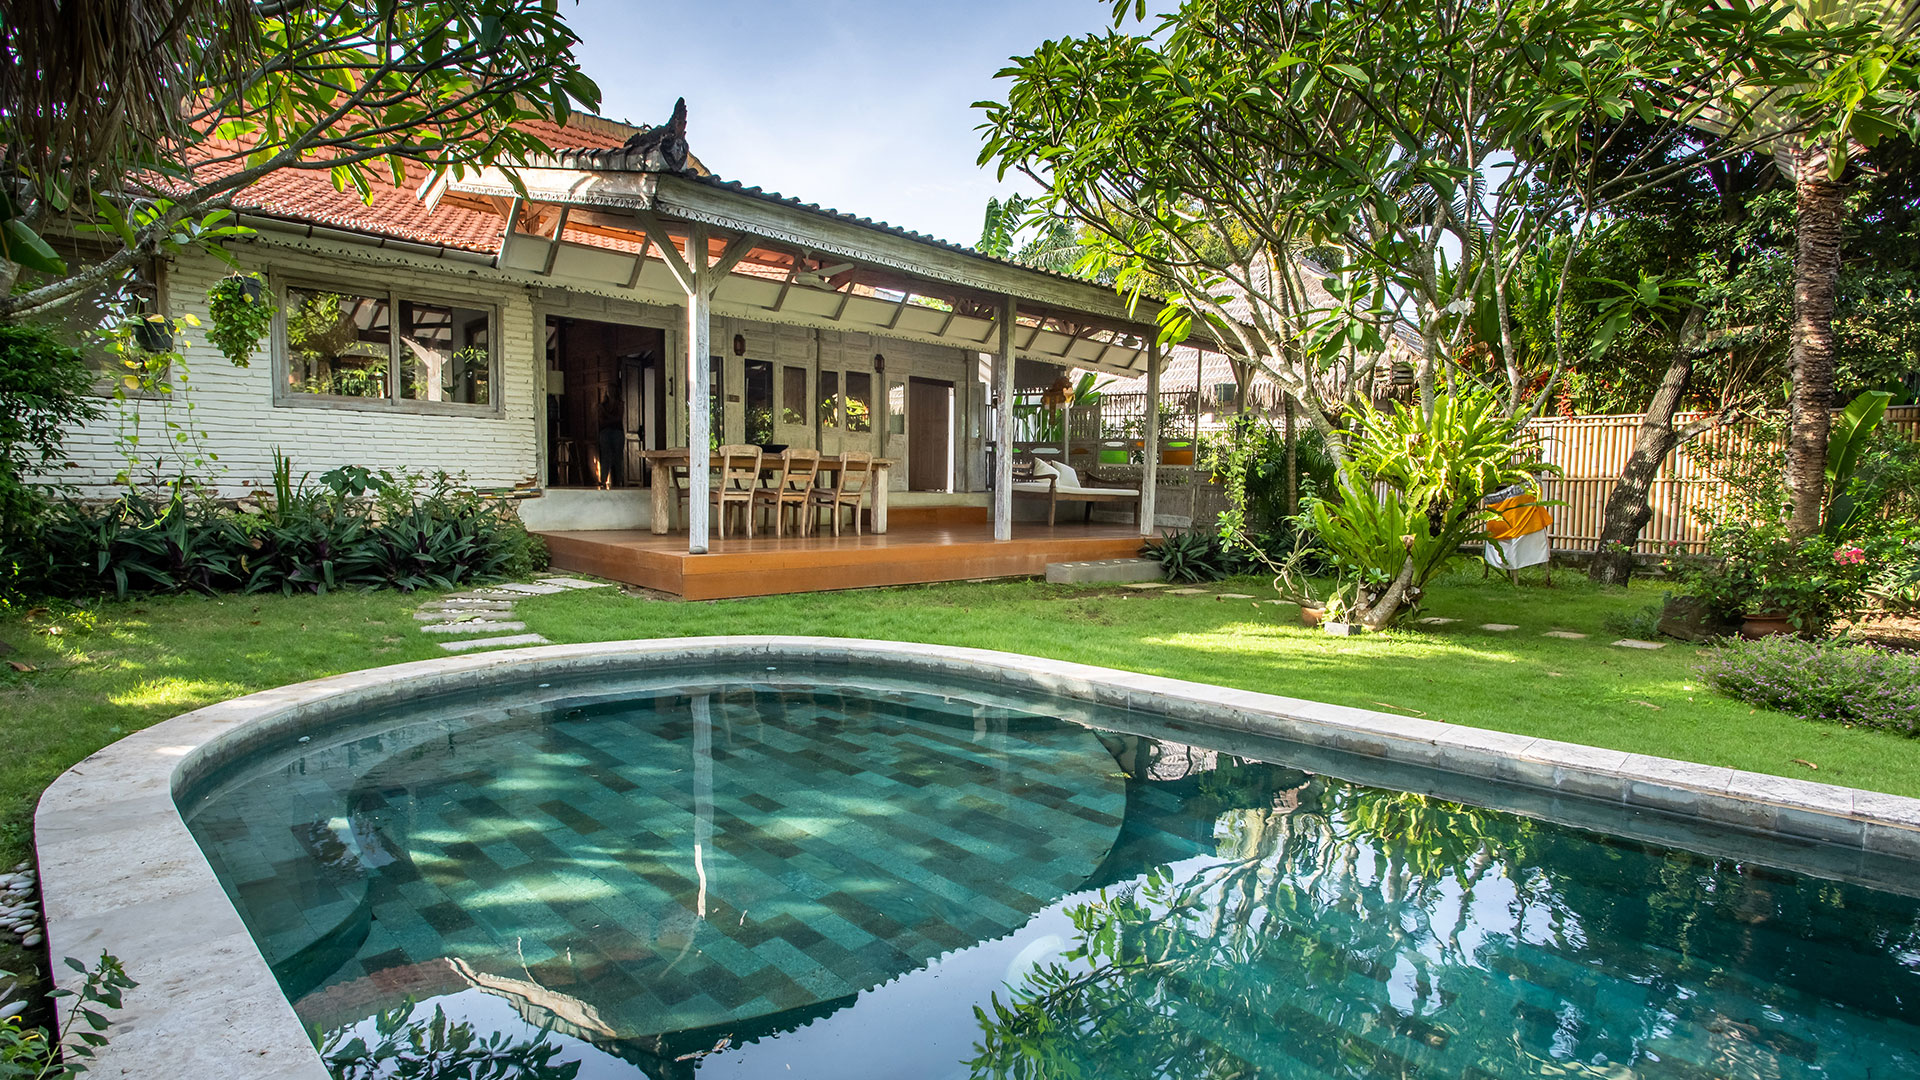 It's an amazing classic style villa located in Jl Nelayan, Canggu. Consist of 3 bedrooms, the villa has its own uniqueness that can be seen...